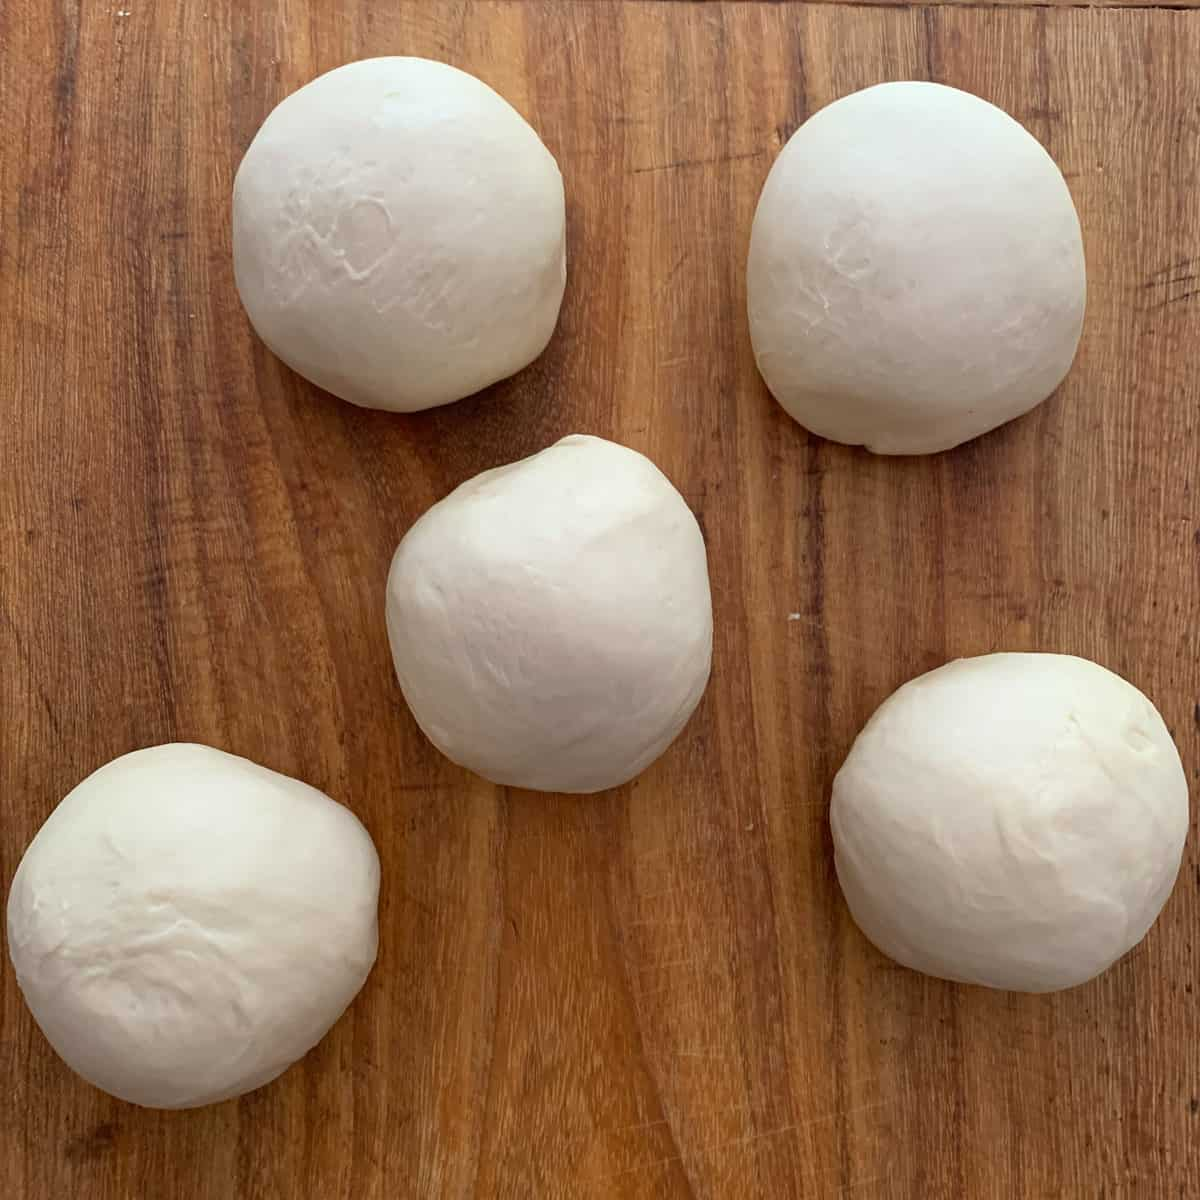 5 balls of dough on wooden board